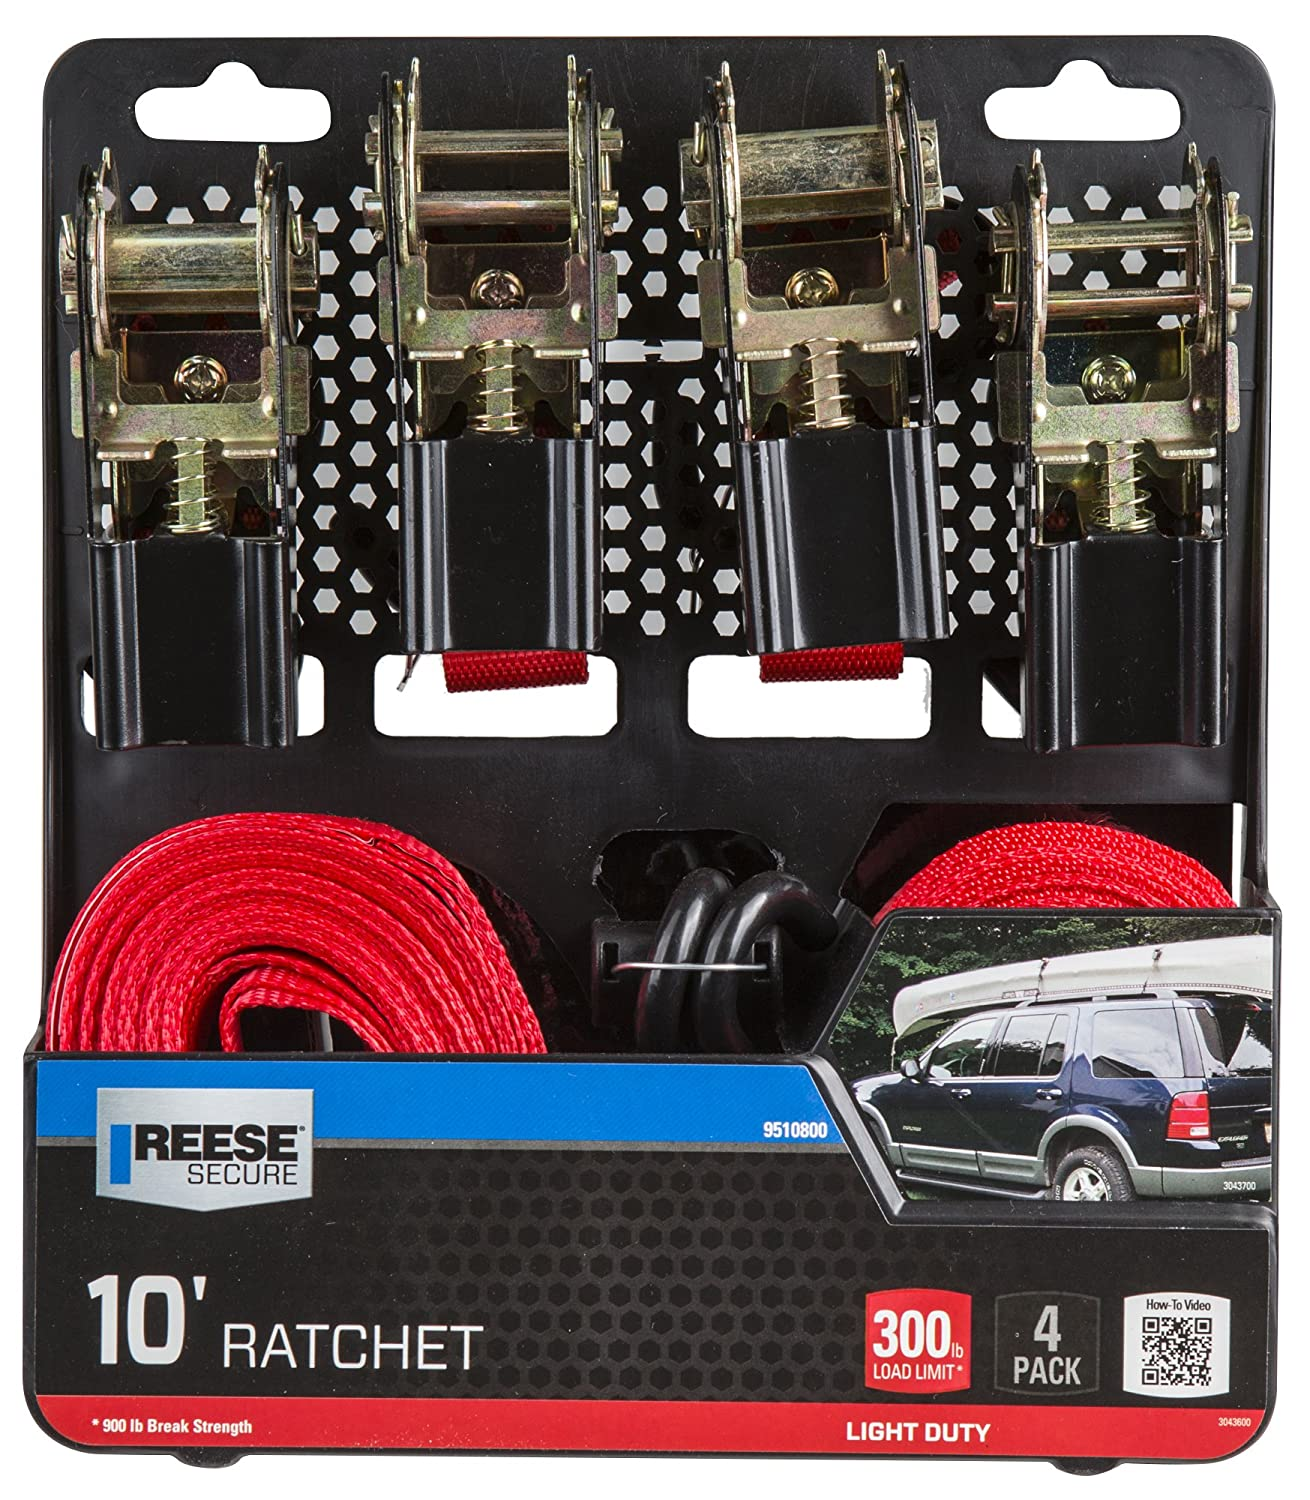 Reese Secure 9510800 10 Light Duty Ratchet with Metal Handle 4 Pack